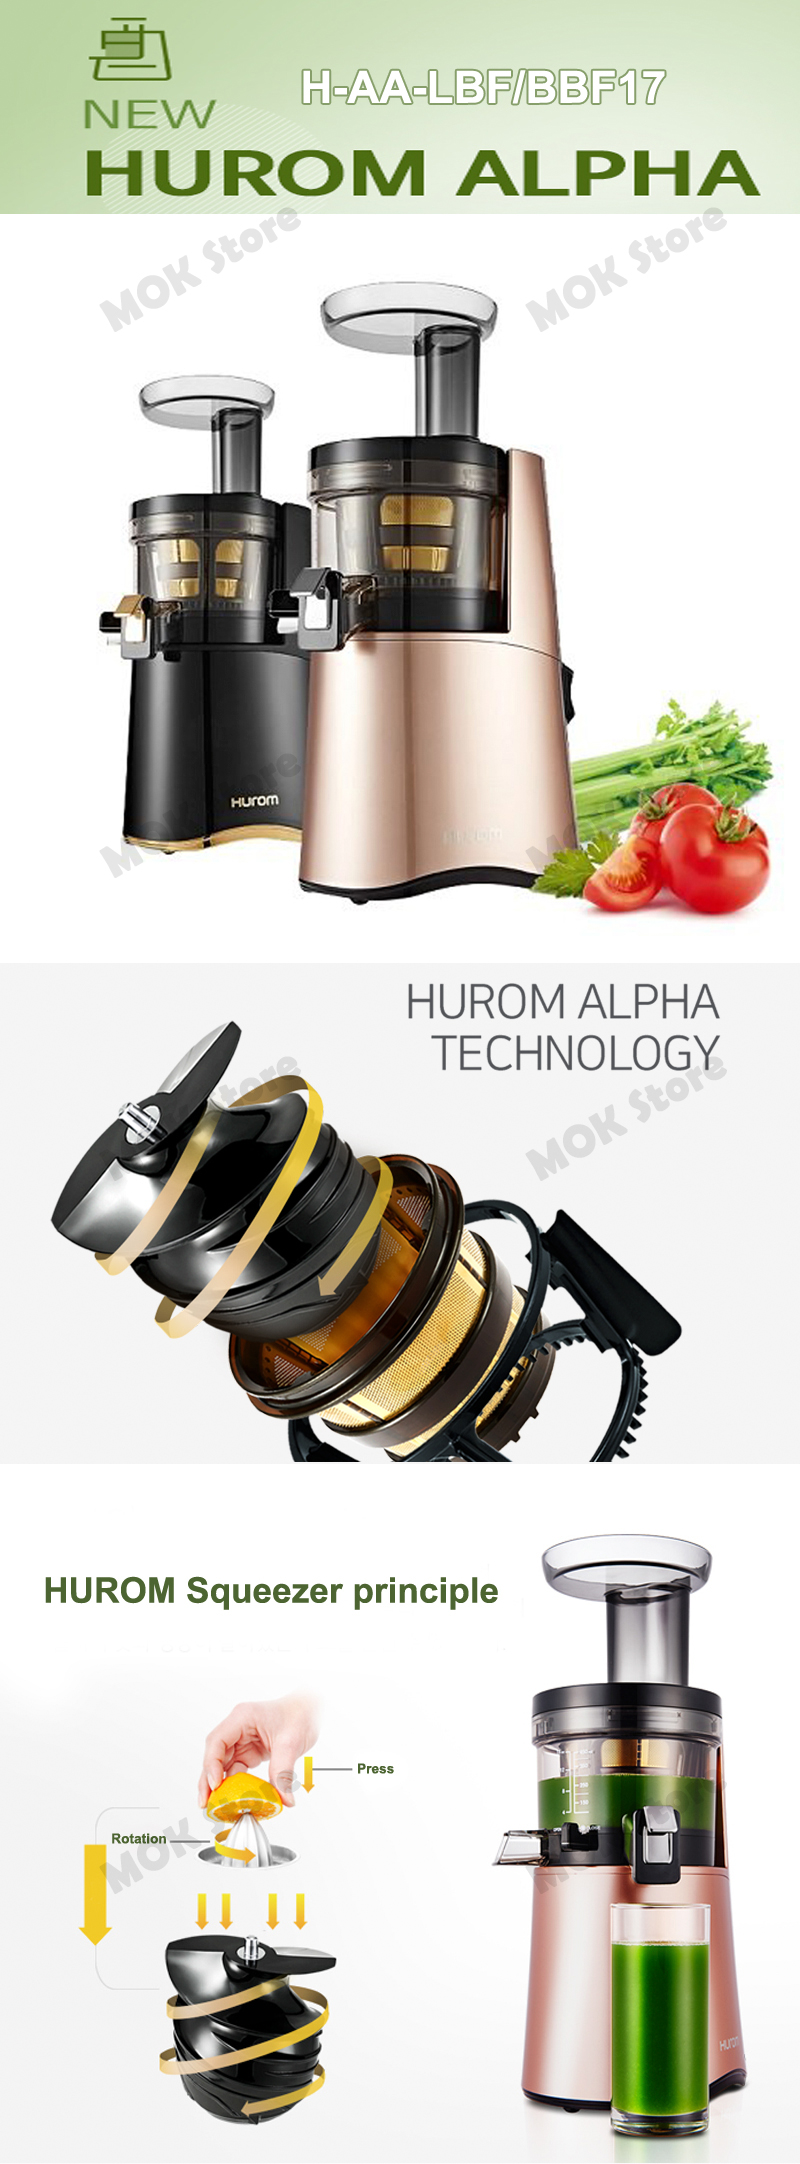 Hurom Alpha Premium Slow Juicer Haa Bbf17 : Hurom Alpha H AA LBF17 Premium Slow Cold Press Juicer Squeeze Extractor Black eBay